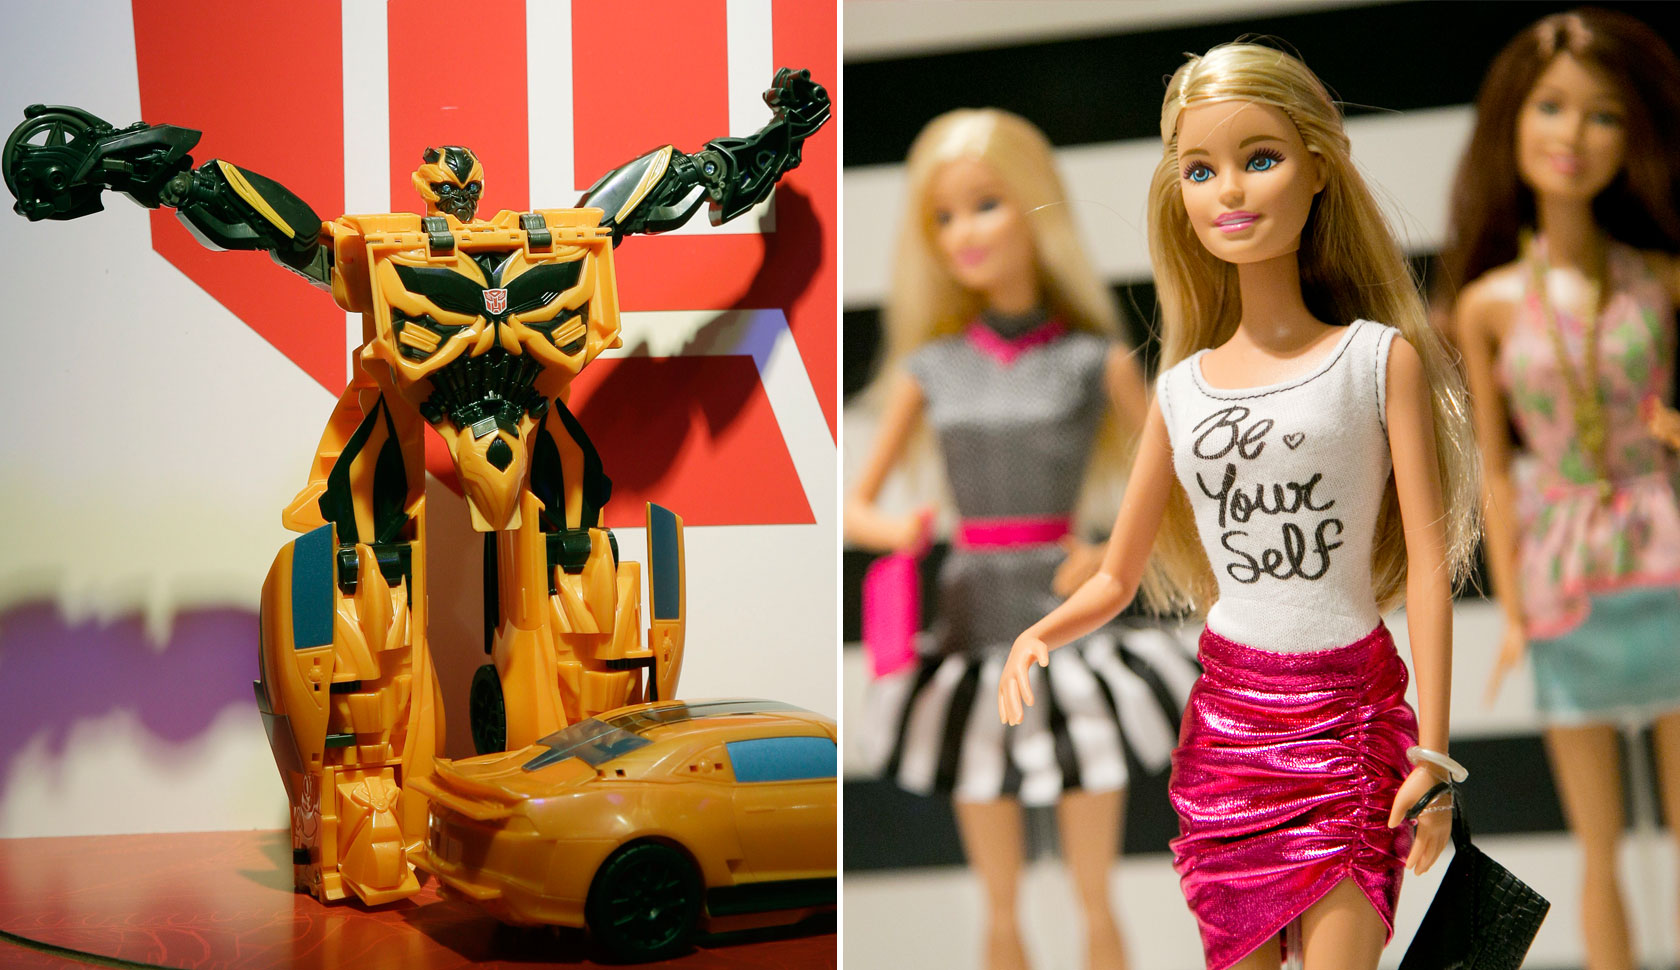 A rumored deal between Hasbro and Mattel would combine Transformers and Barbie under the same toy maker.